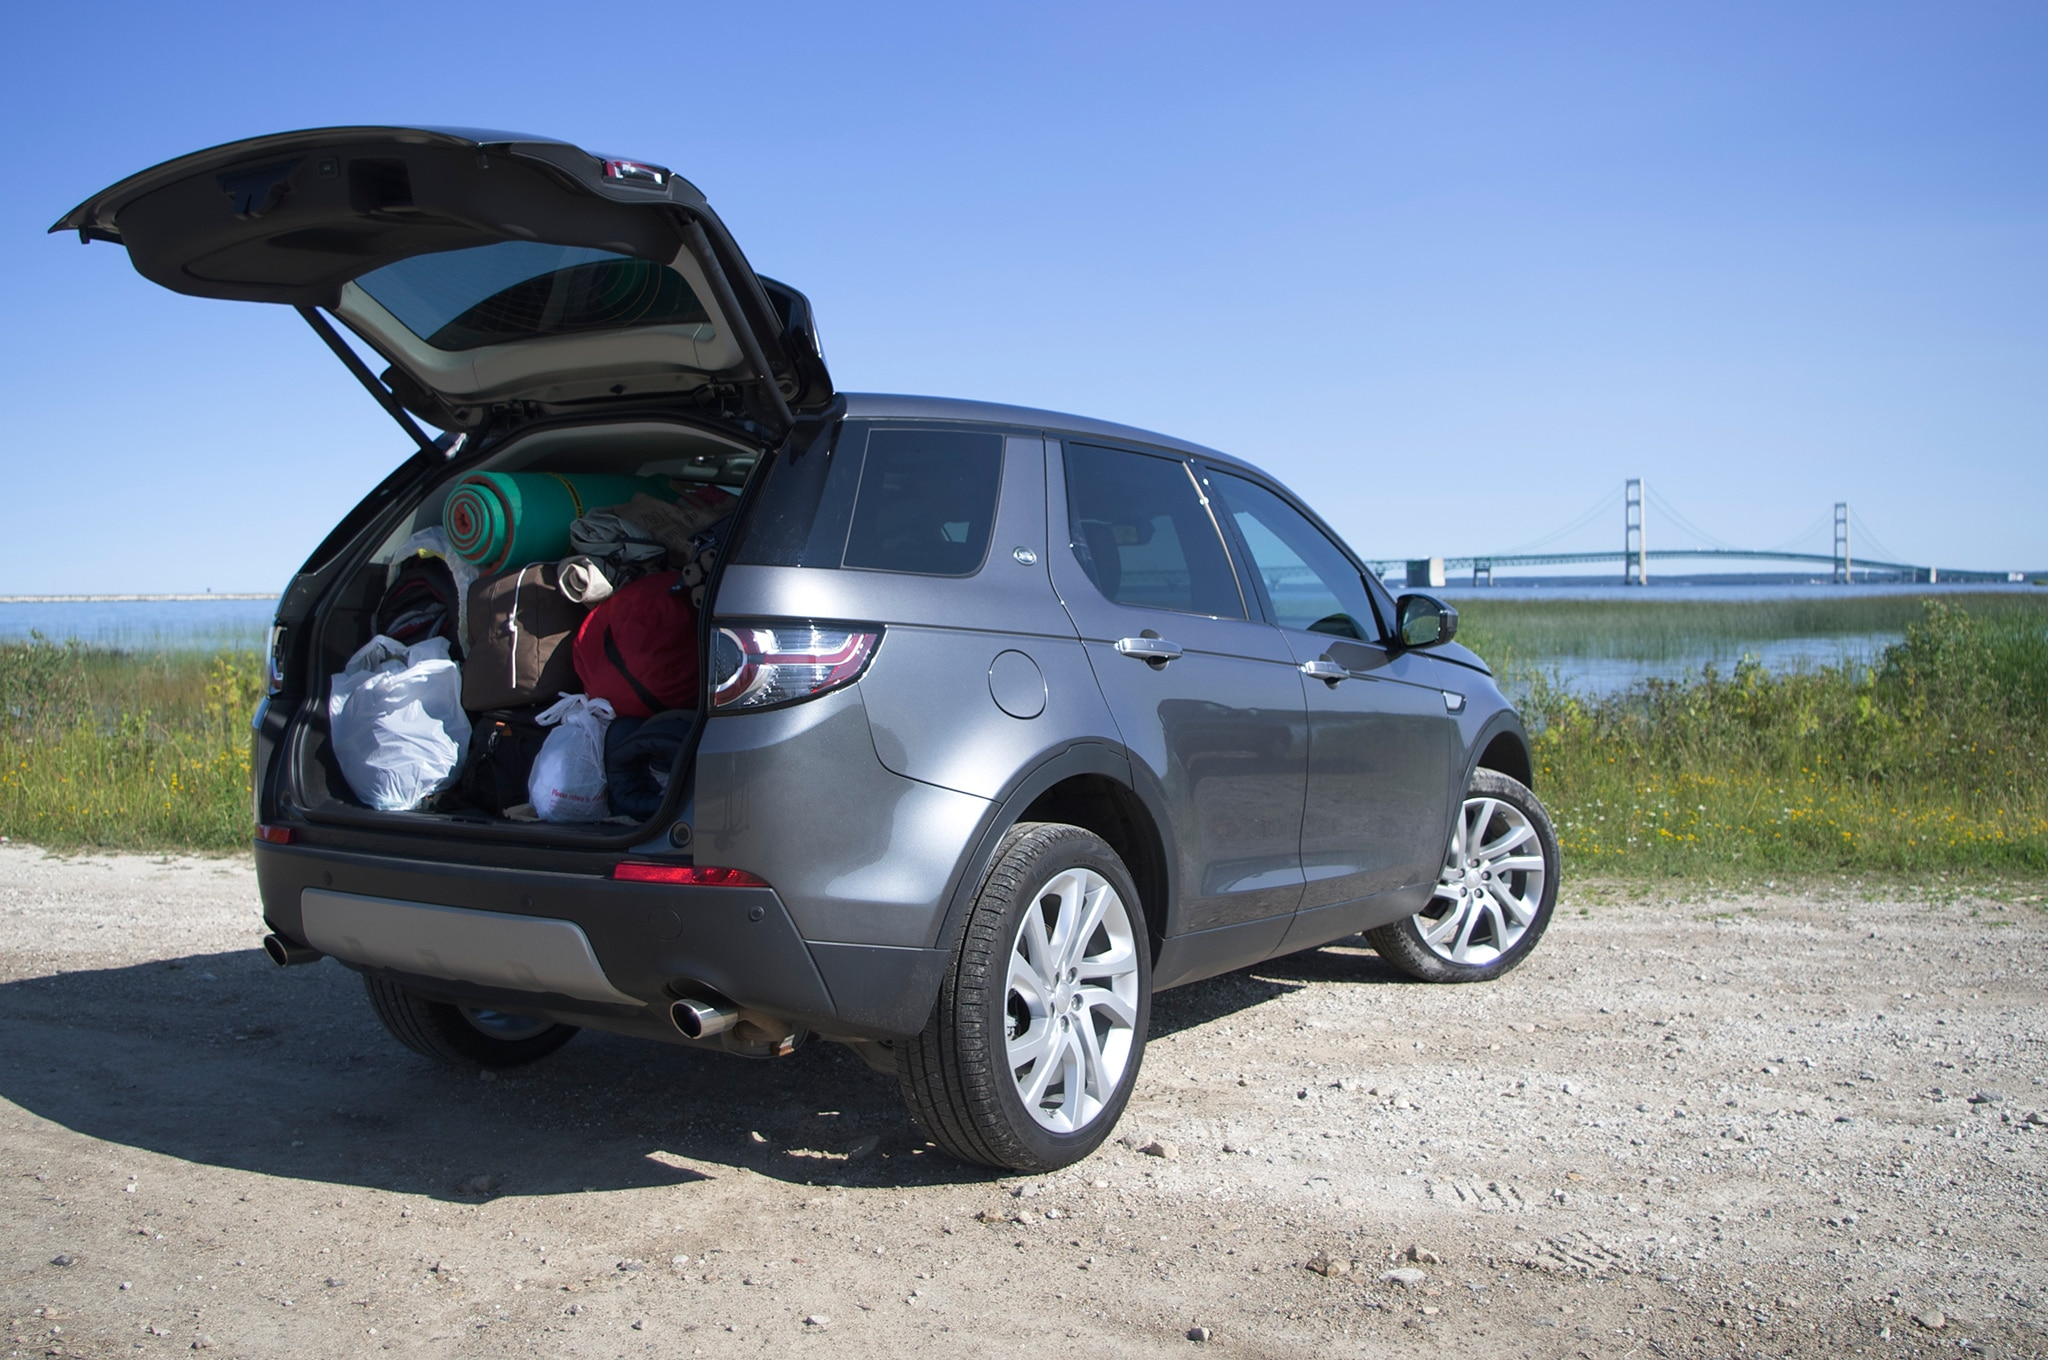 https://st.automobilemag.com/uploads/sites/11/2015/08/2015-Land-Rover-Discovery-Sport-HSE-Luxury-rear-three-quarter-hatch-open.jpg